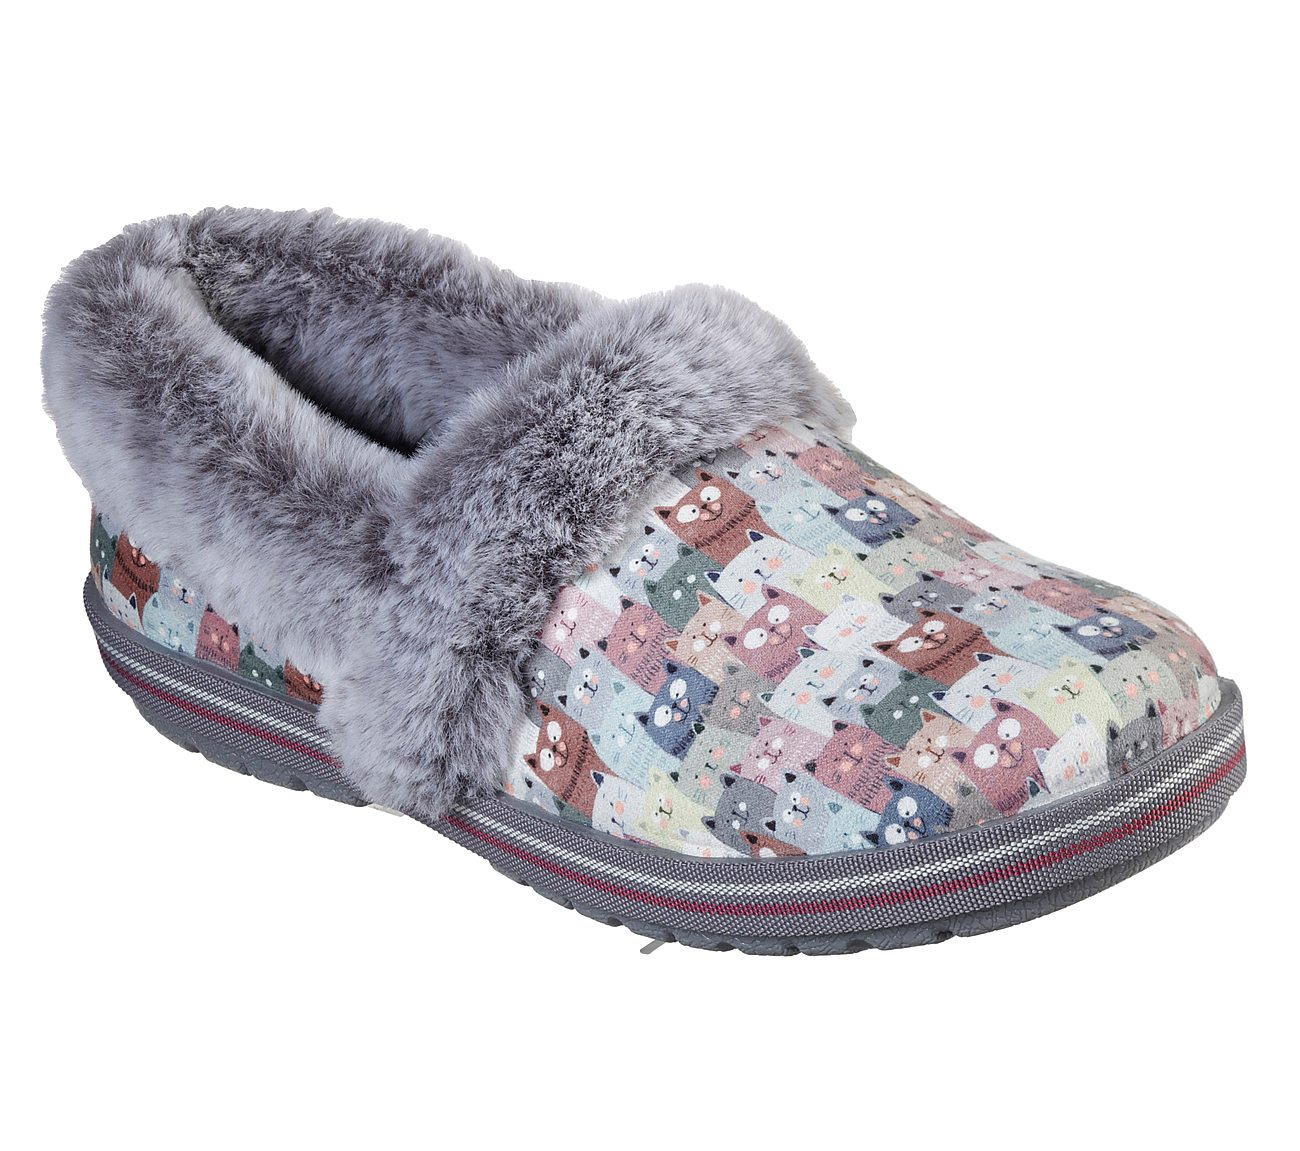 Buy SKECHERS BOBS Too Cozy - Cuddled Up